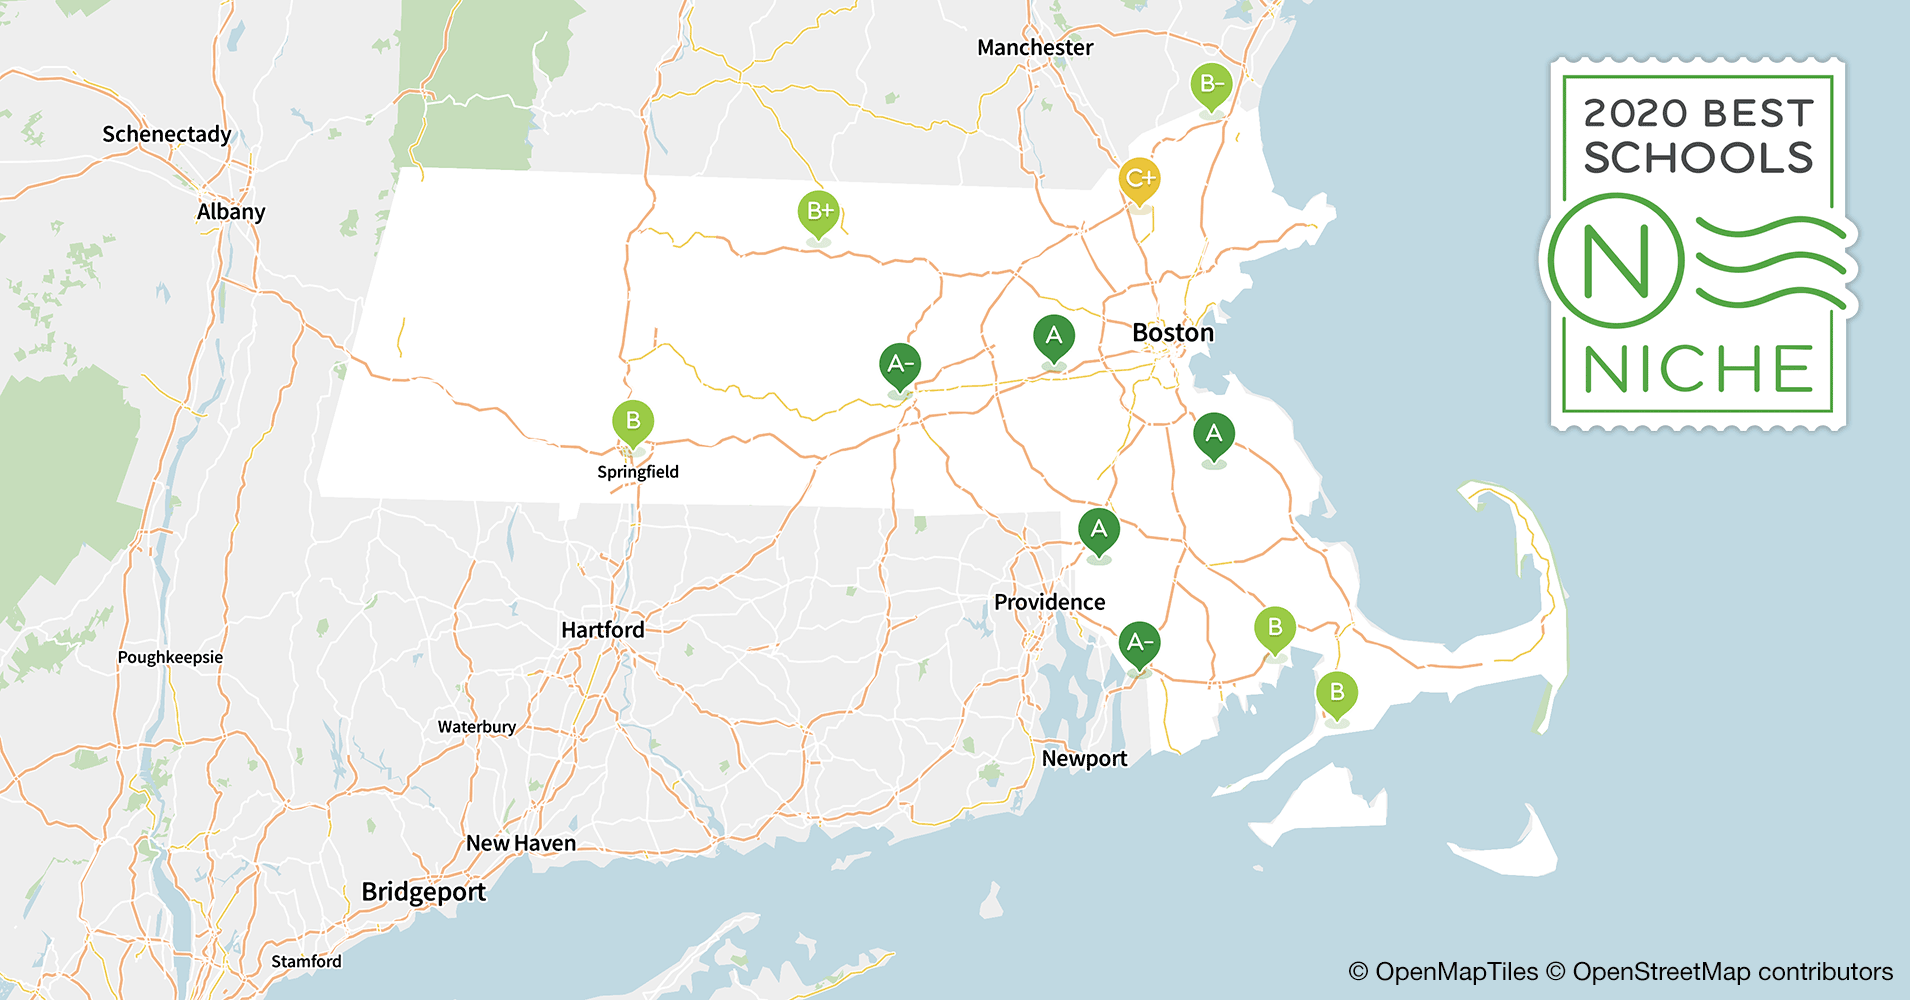 2020 Best School Districts in Machusetts - Niche Map Of Westwood Ma on old map of framingham ma, map of longmeadow ma, map of tewksbury ma, map of canton ma, map of chicopee ma, map of new marlborough ma, map of west falmouth ma, map of route 128 ma, map of mendham ma, map of dorchester ma, map of turners falls ma, map of foxwood ma, map of south dartmouth ma, map of ocean city ma, map of westfield ma, map of methuen ma, map of west harwich ma, map of roxbury ma, map of silver lake ma, map of westport ma,